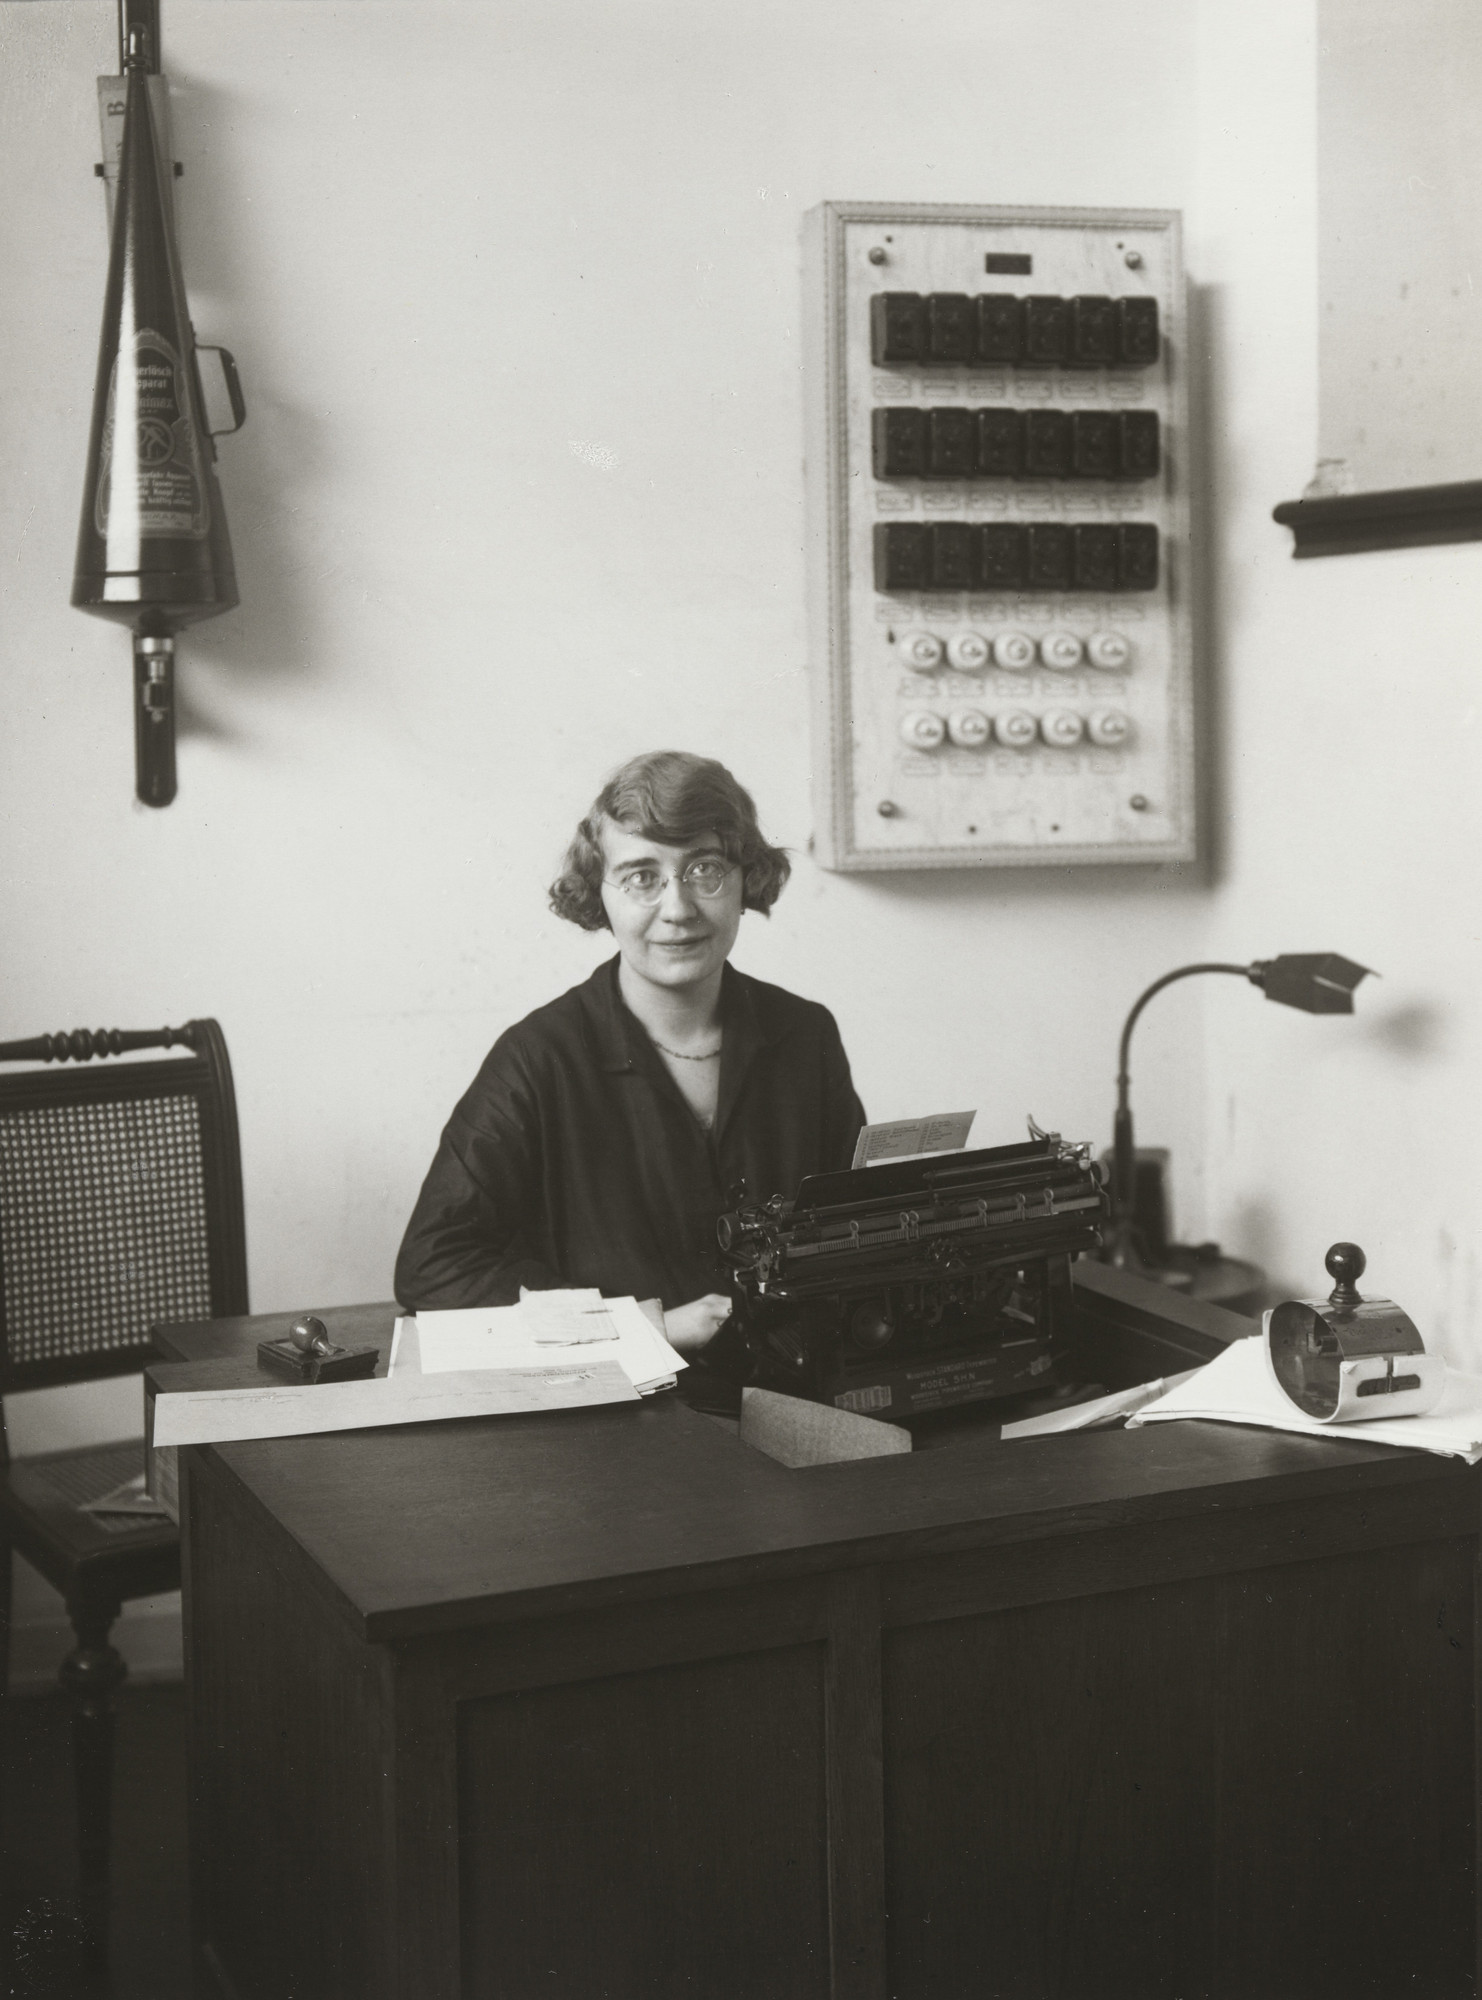 August Sander. Office Worker. c. 1928